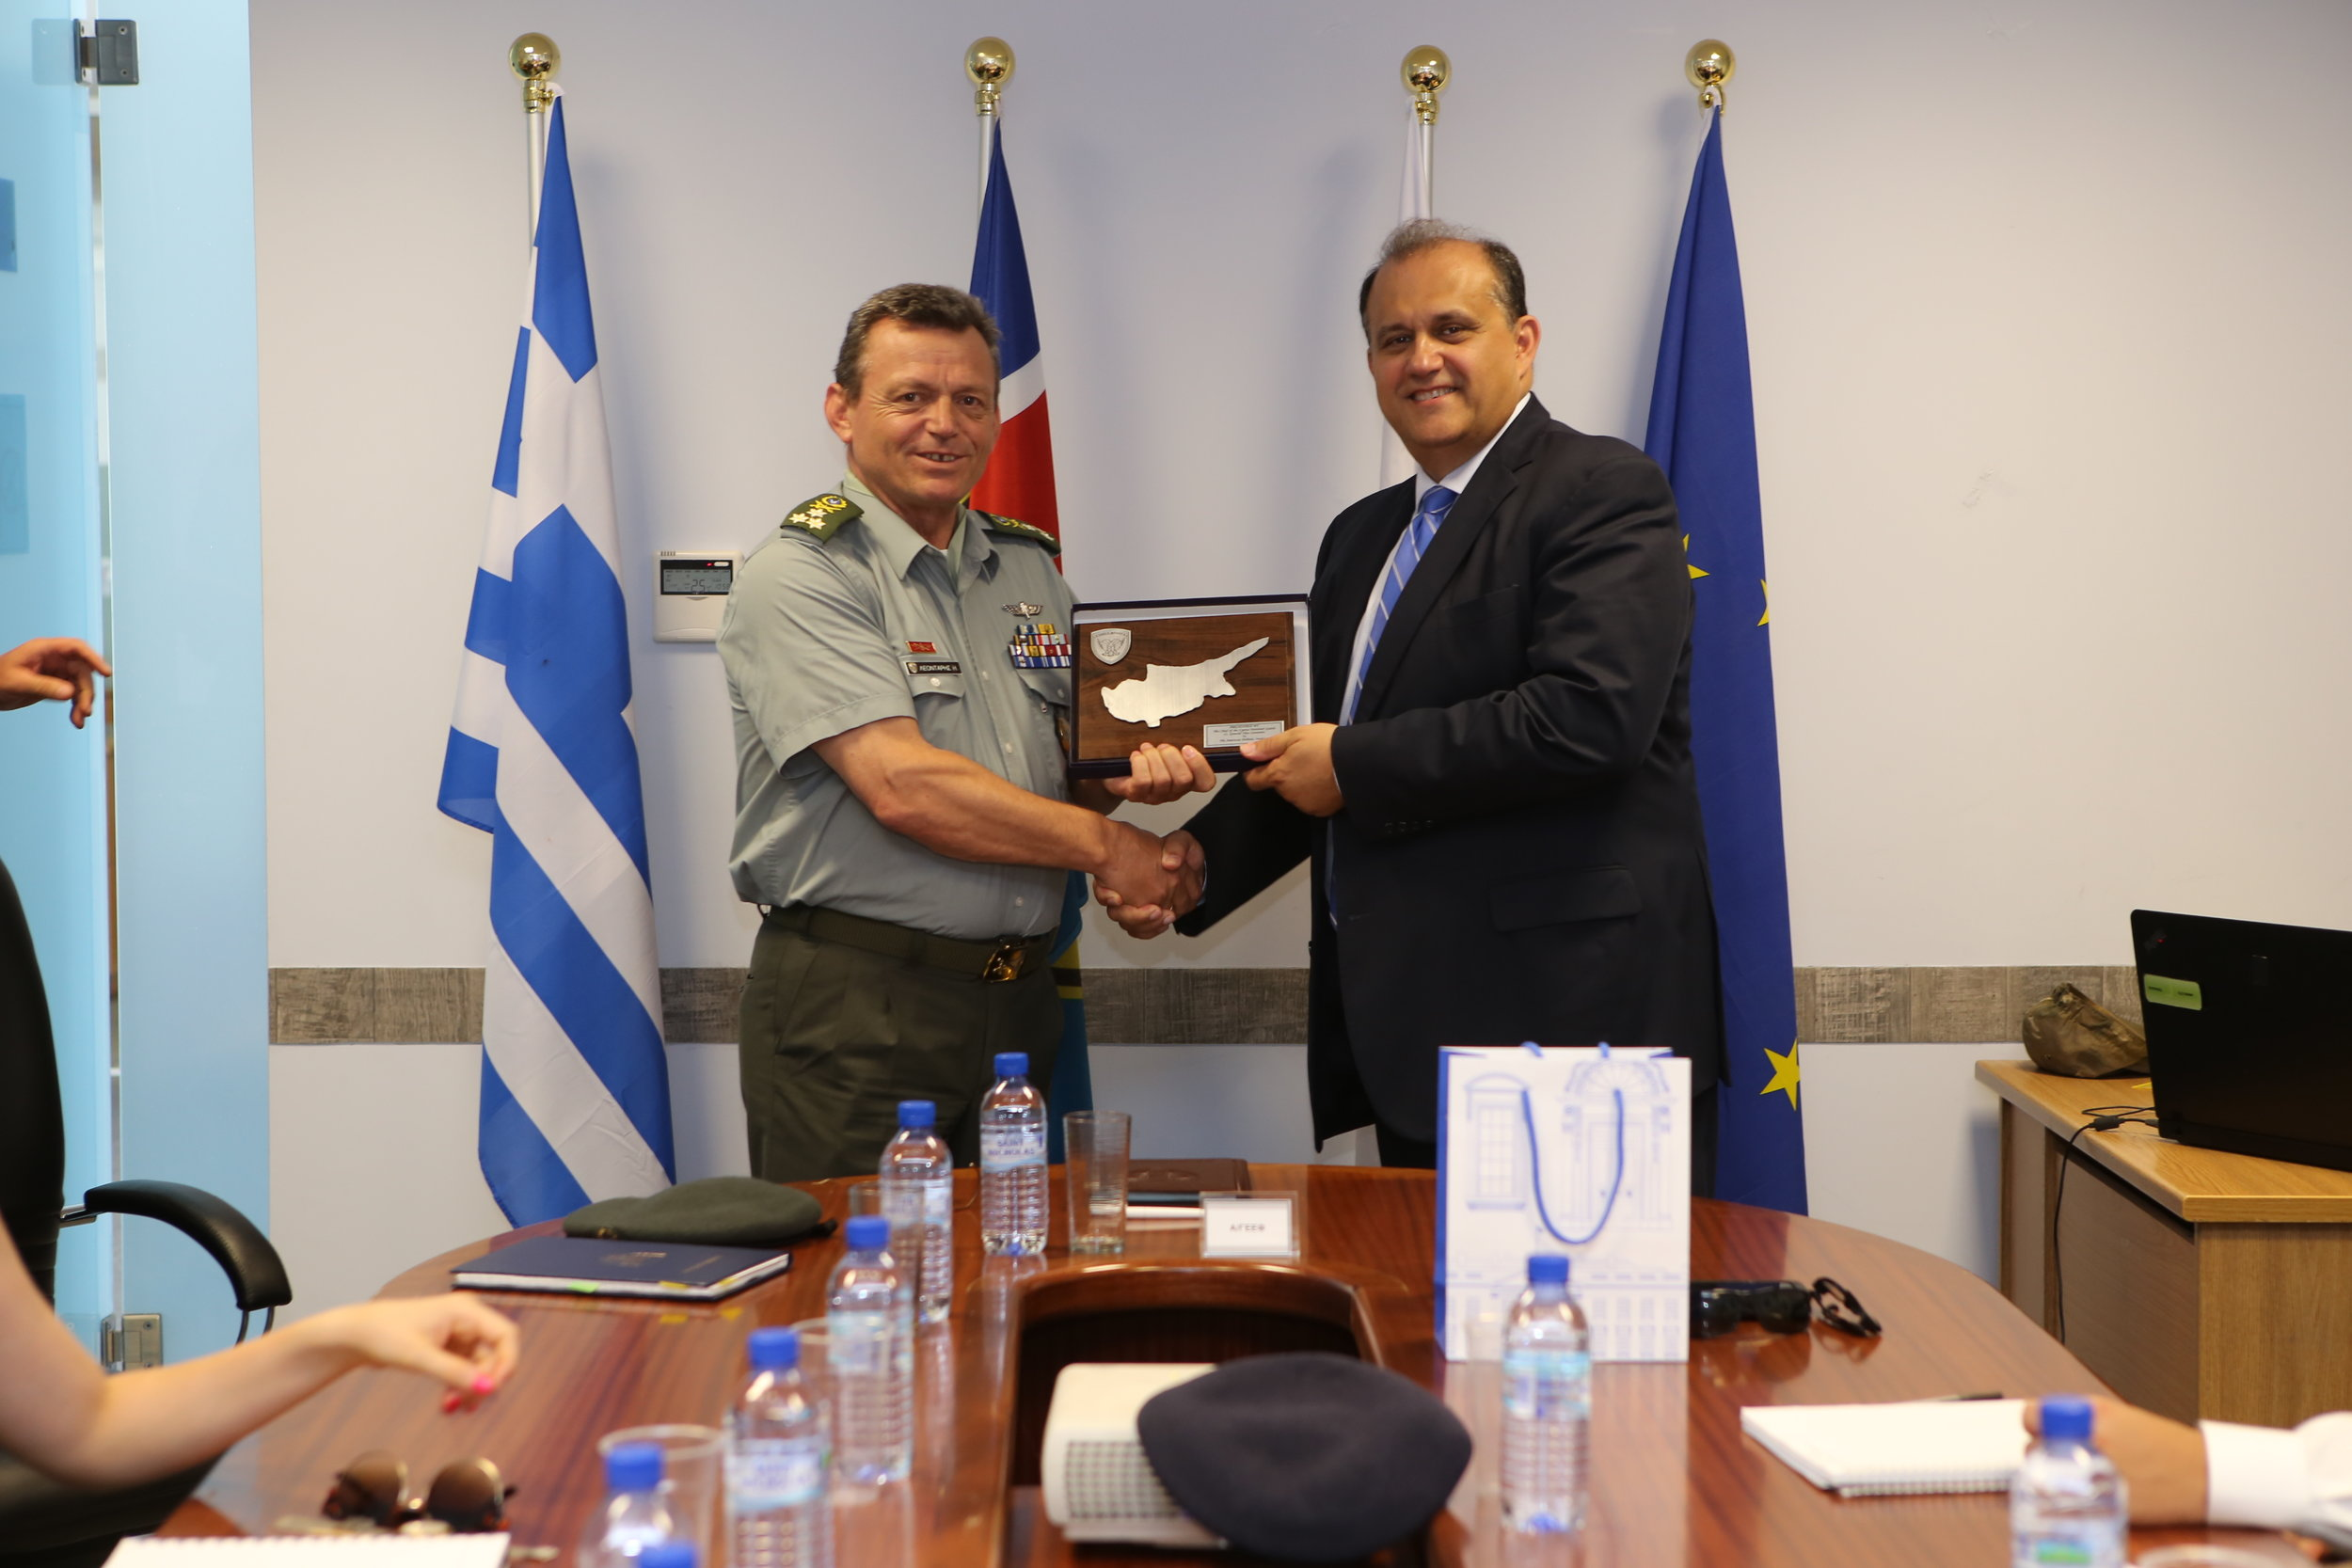 Lt. Gen. Elias Leontaris, Chief of the Cypriot National Guard General Staff exchanges gifts with Nick Larigakis.